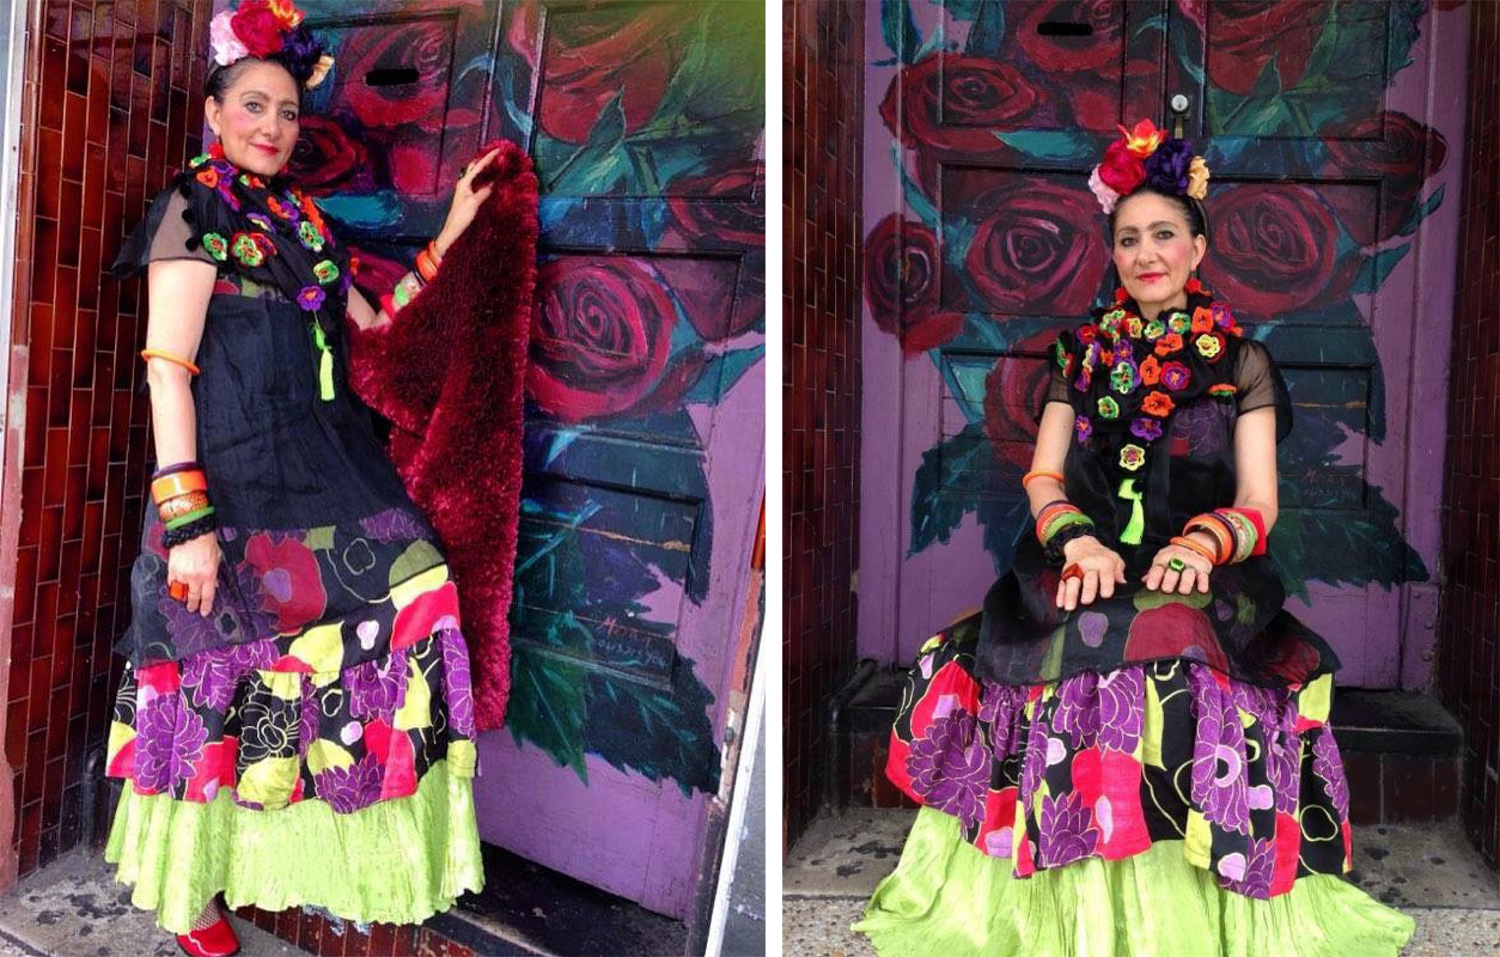 Elizabeth Kingston wears her Frida Kahlo-inspired ensemble handmade and styled from existing resources